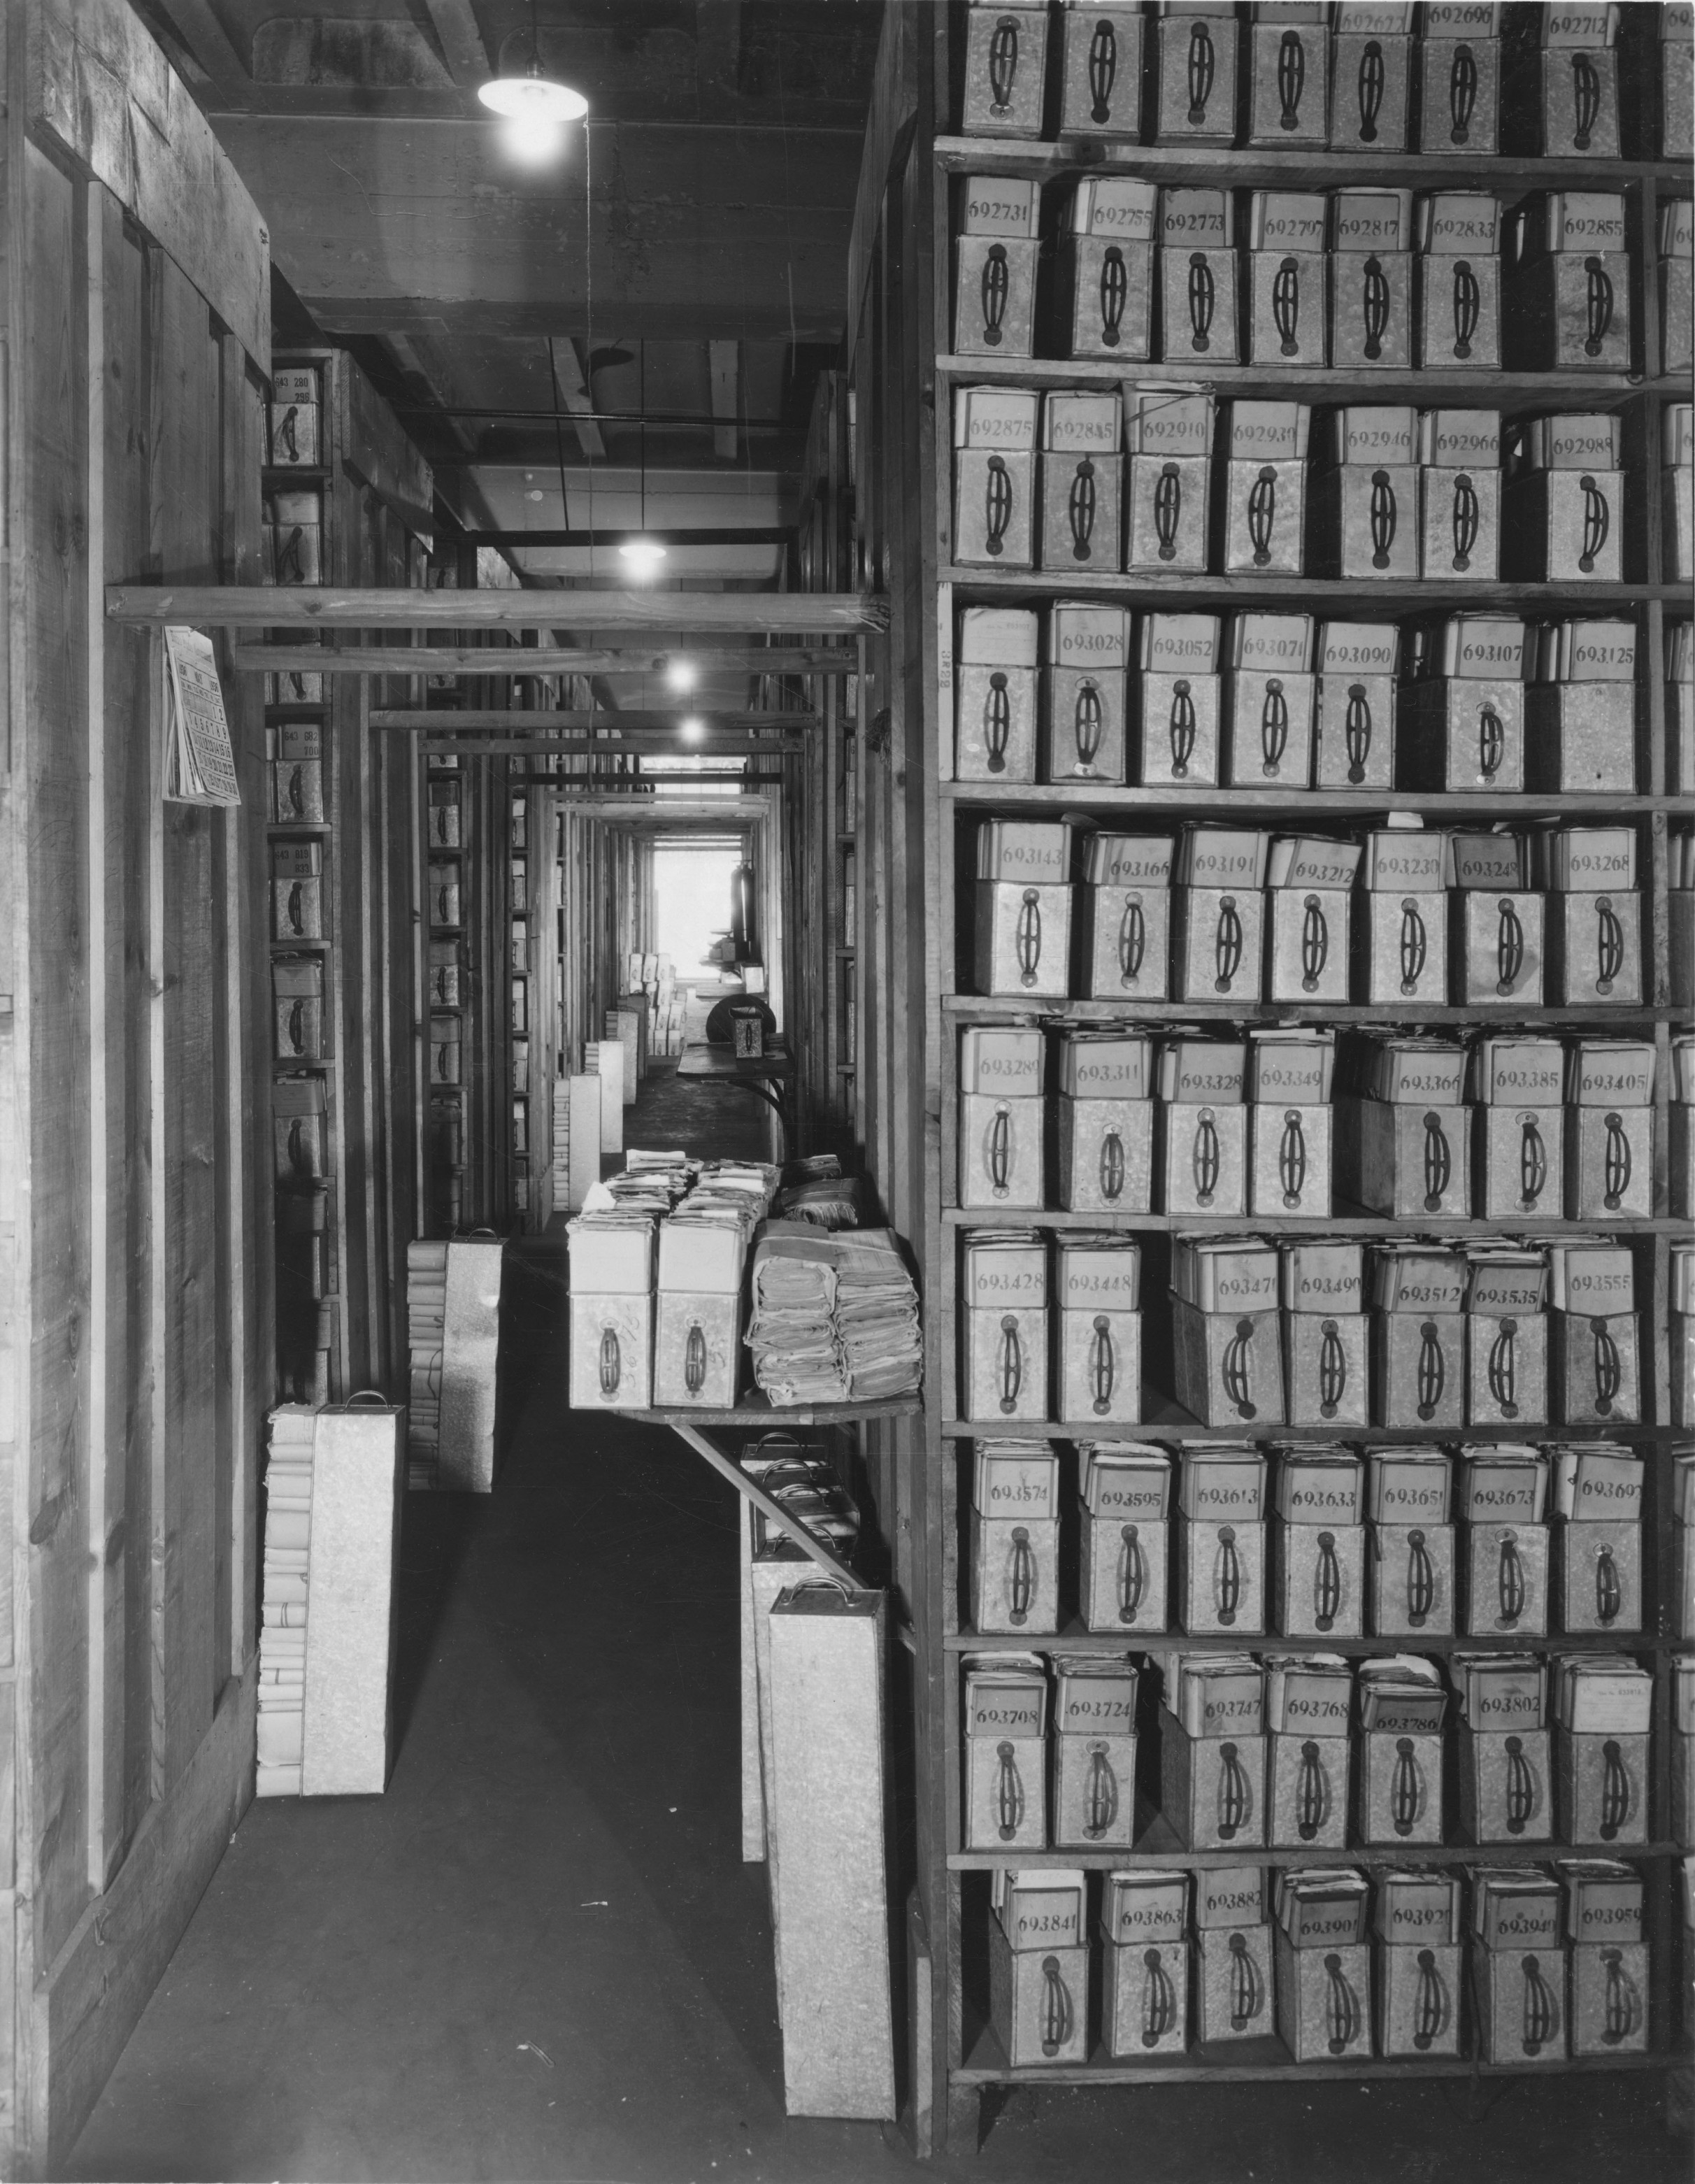 64-NAD-143 Pension Files in Garage, 1936.jpg